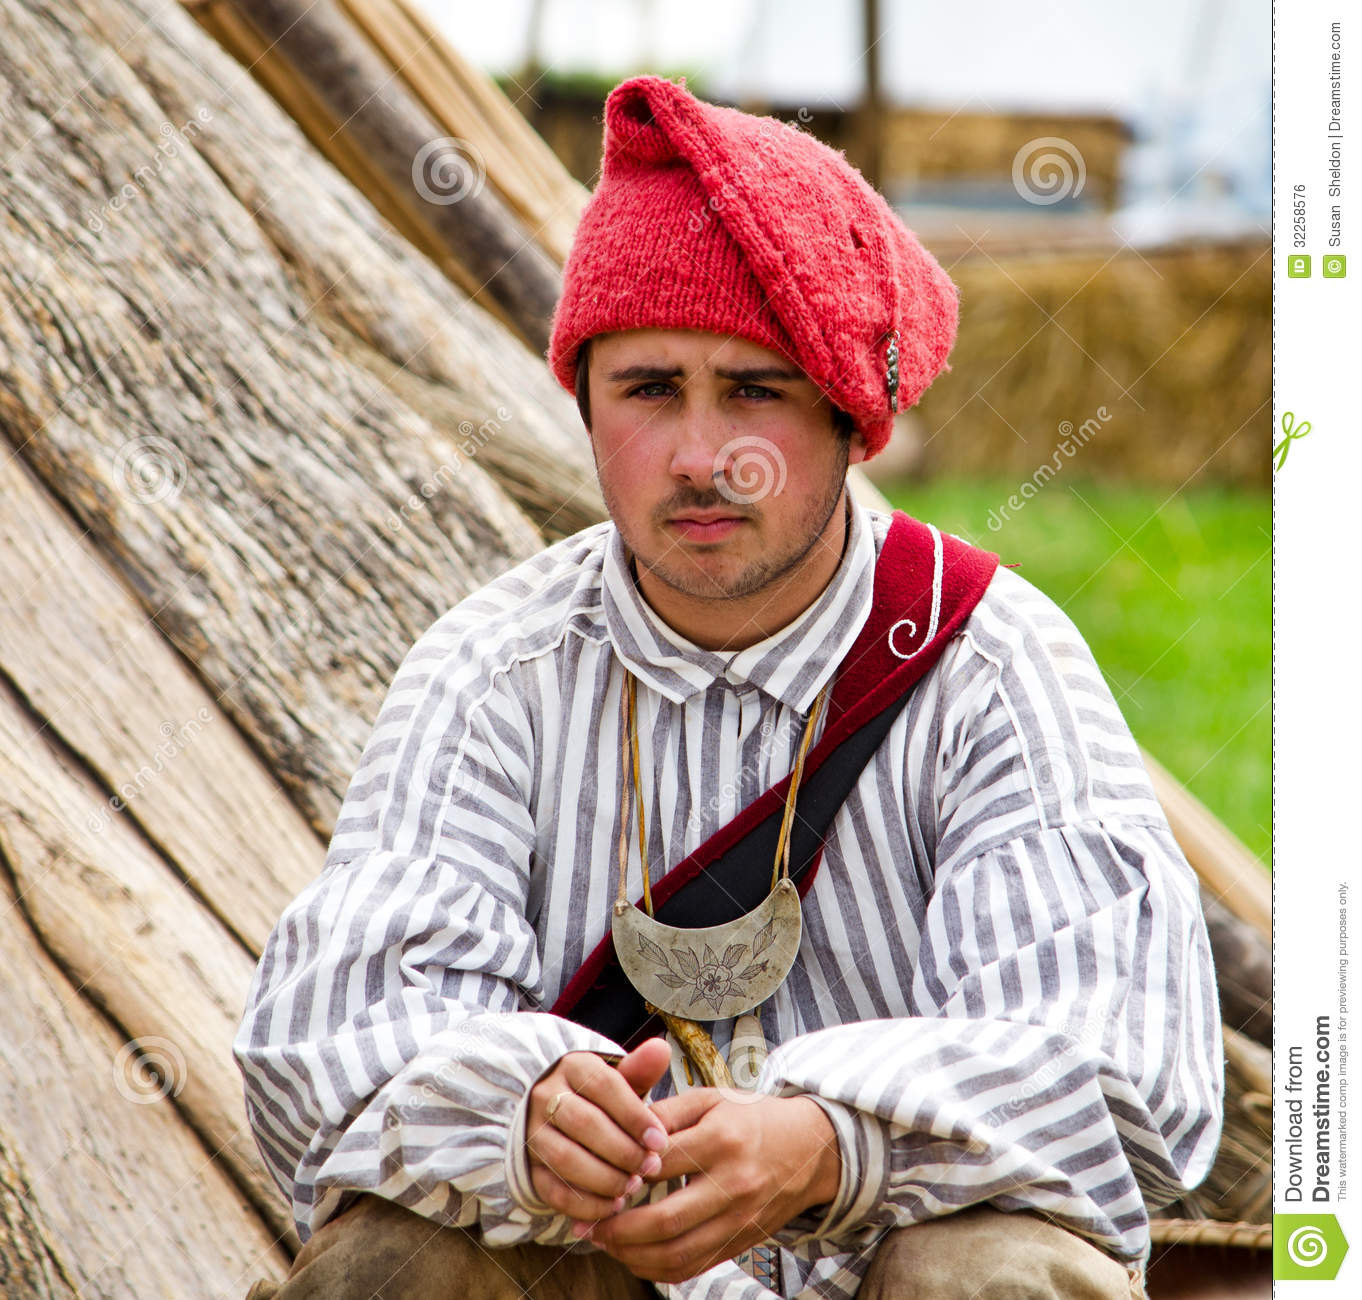 92a91d7d4130f Portrait of a young A man dressed in 1700 era clothes at the feast of the  Strawberry moon festival in Grand Haven Michigan. reenactors dress up to  recreate ...